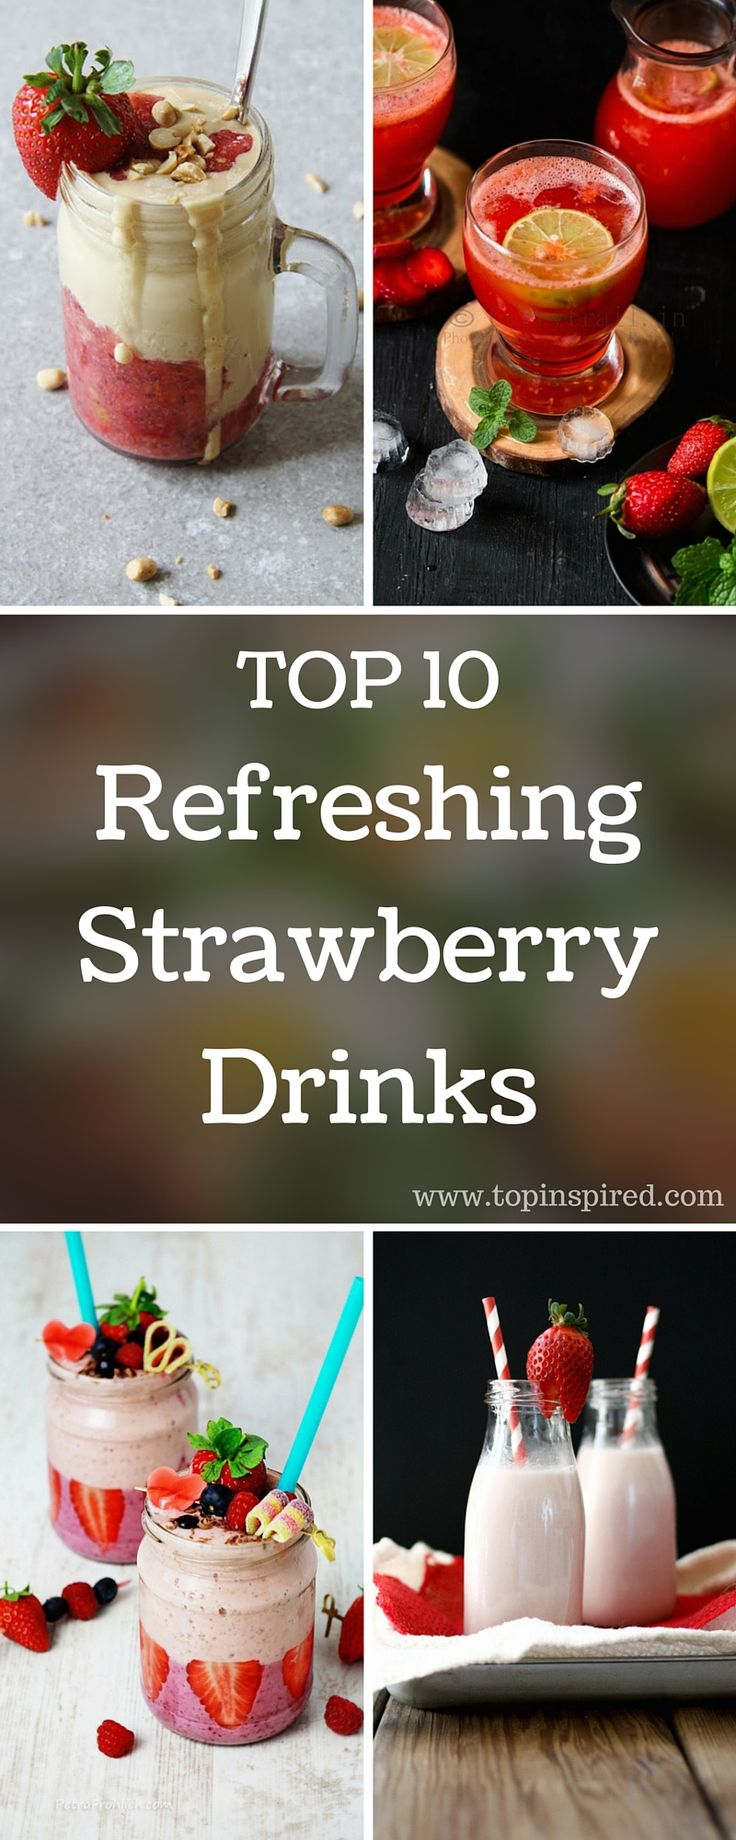 Start your day with a delicious strawberry smoothie or prepare a spiked strawberry drink that will give your next dinner party a 'wow' factor. #strawberry #smoothie #cocktail #strawberry_drink